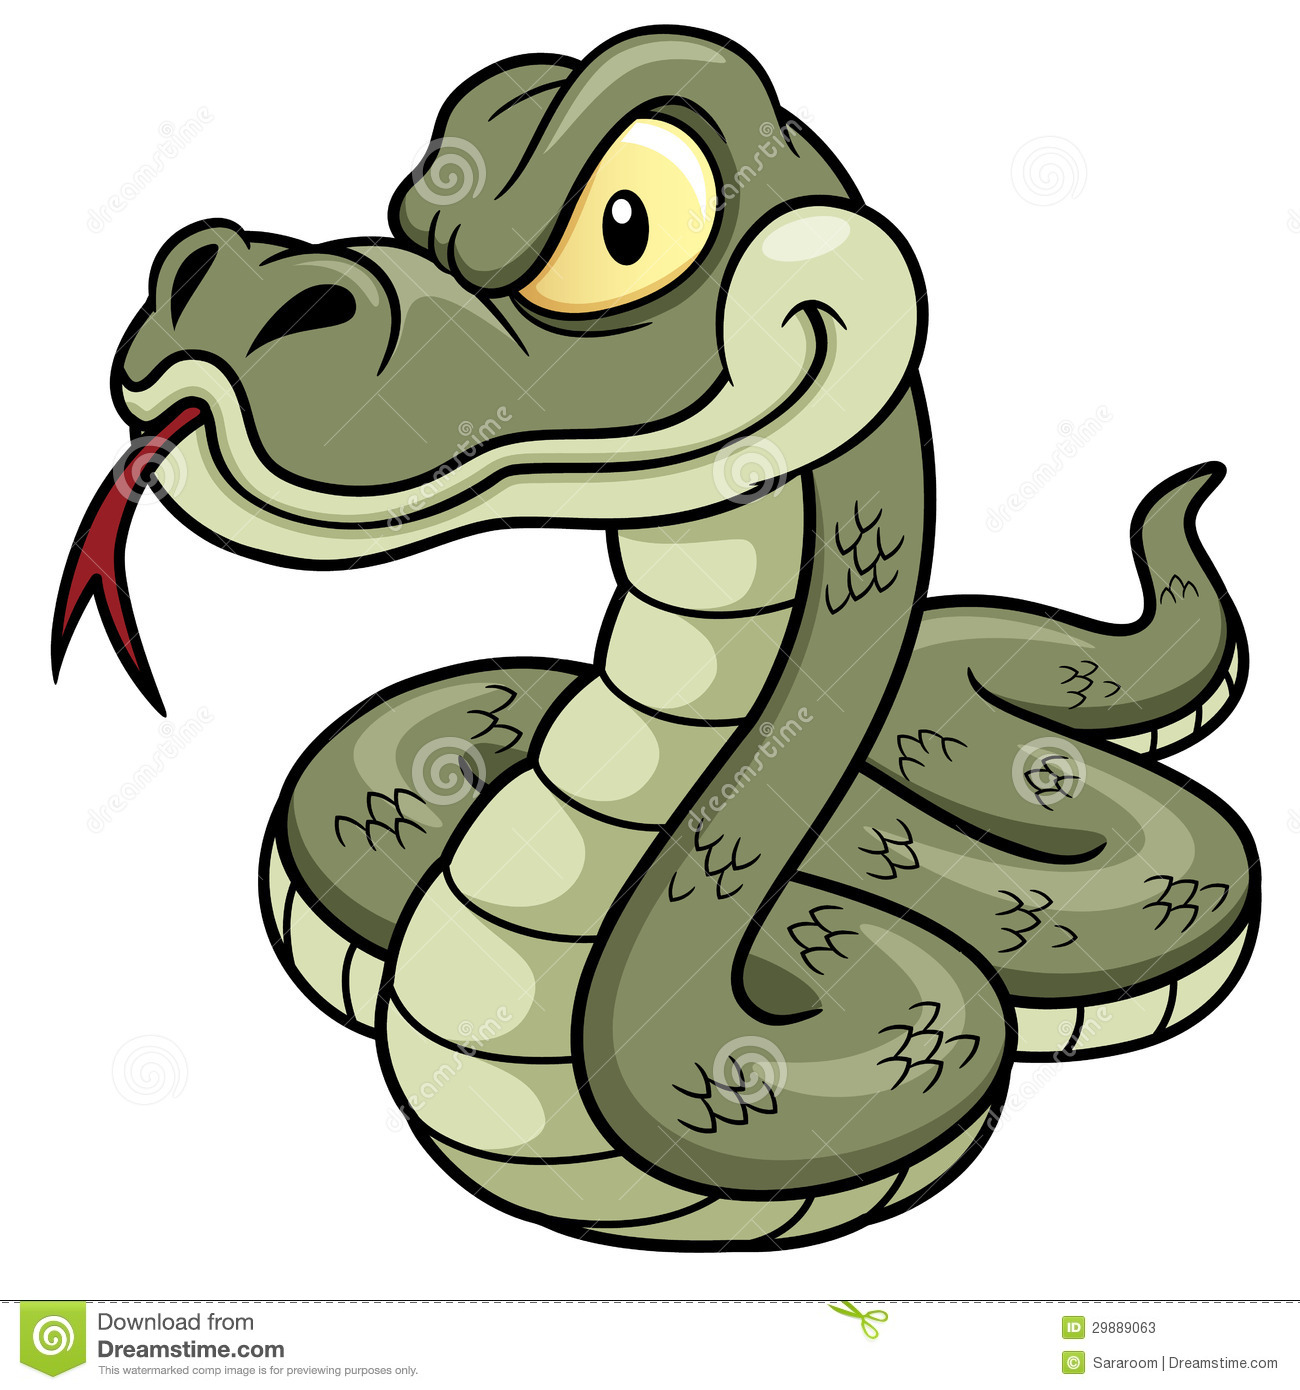 Cartoon Snake Stock Photos - Image: 29889063